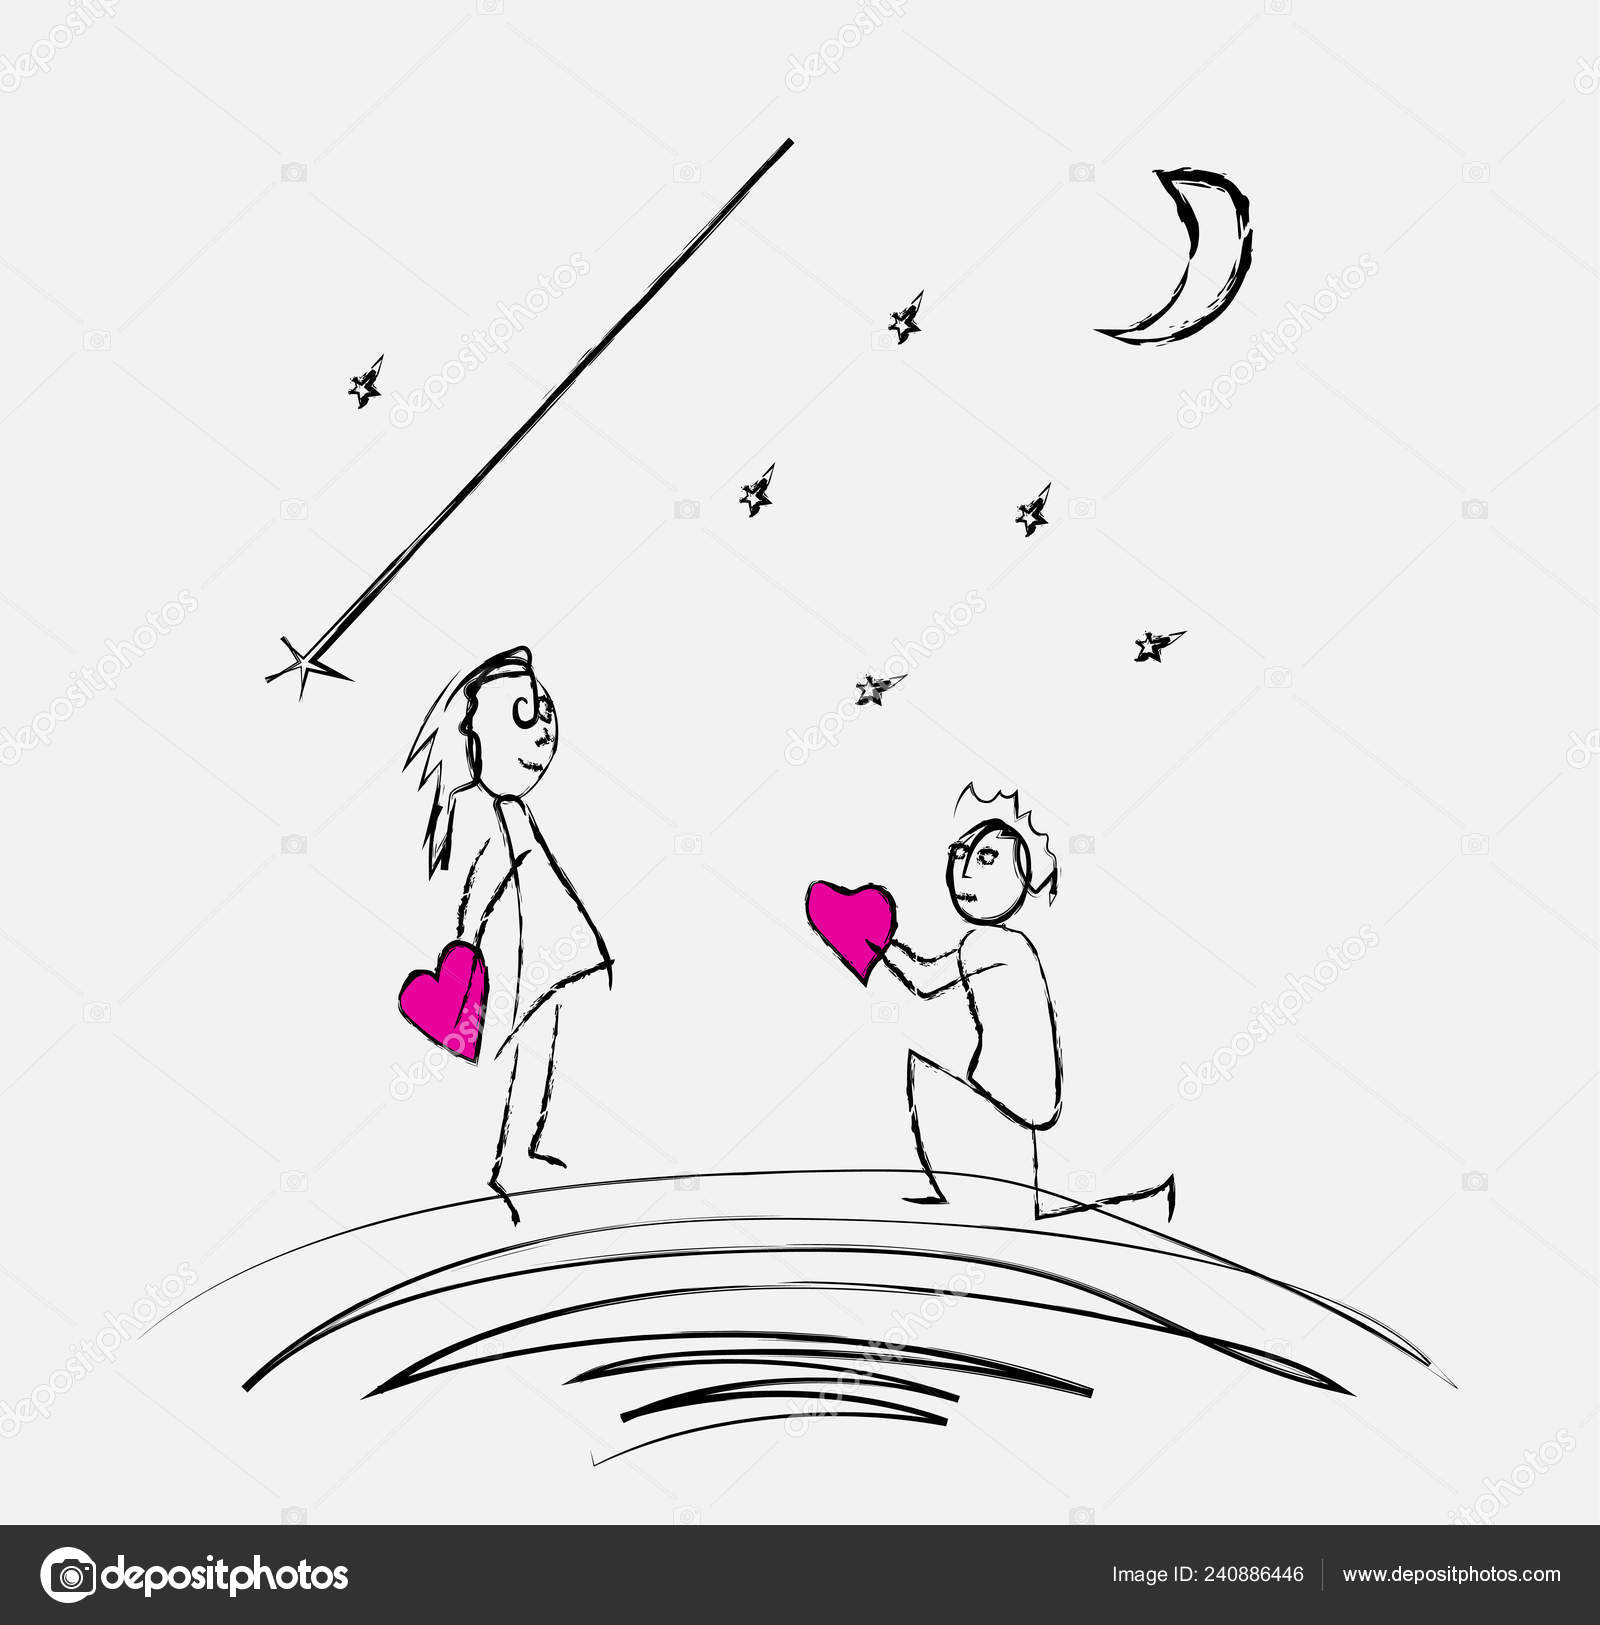 Guy confesses girl love pencil drawing stock vector